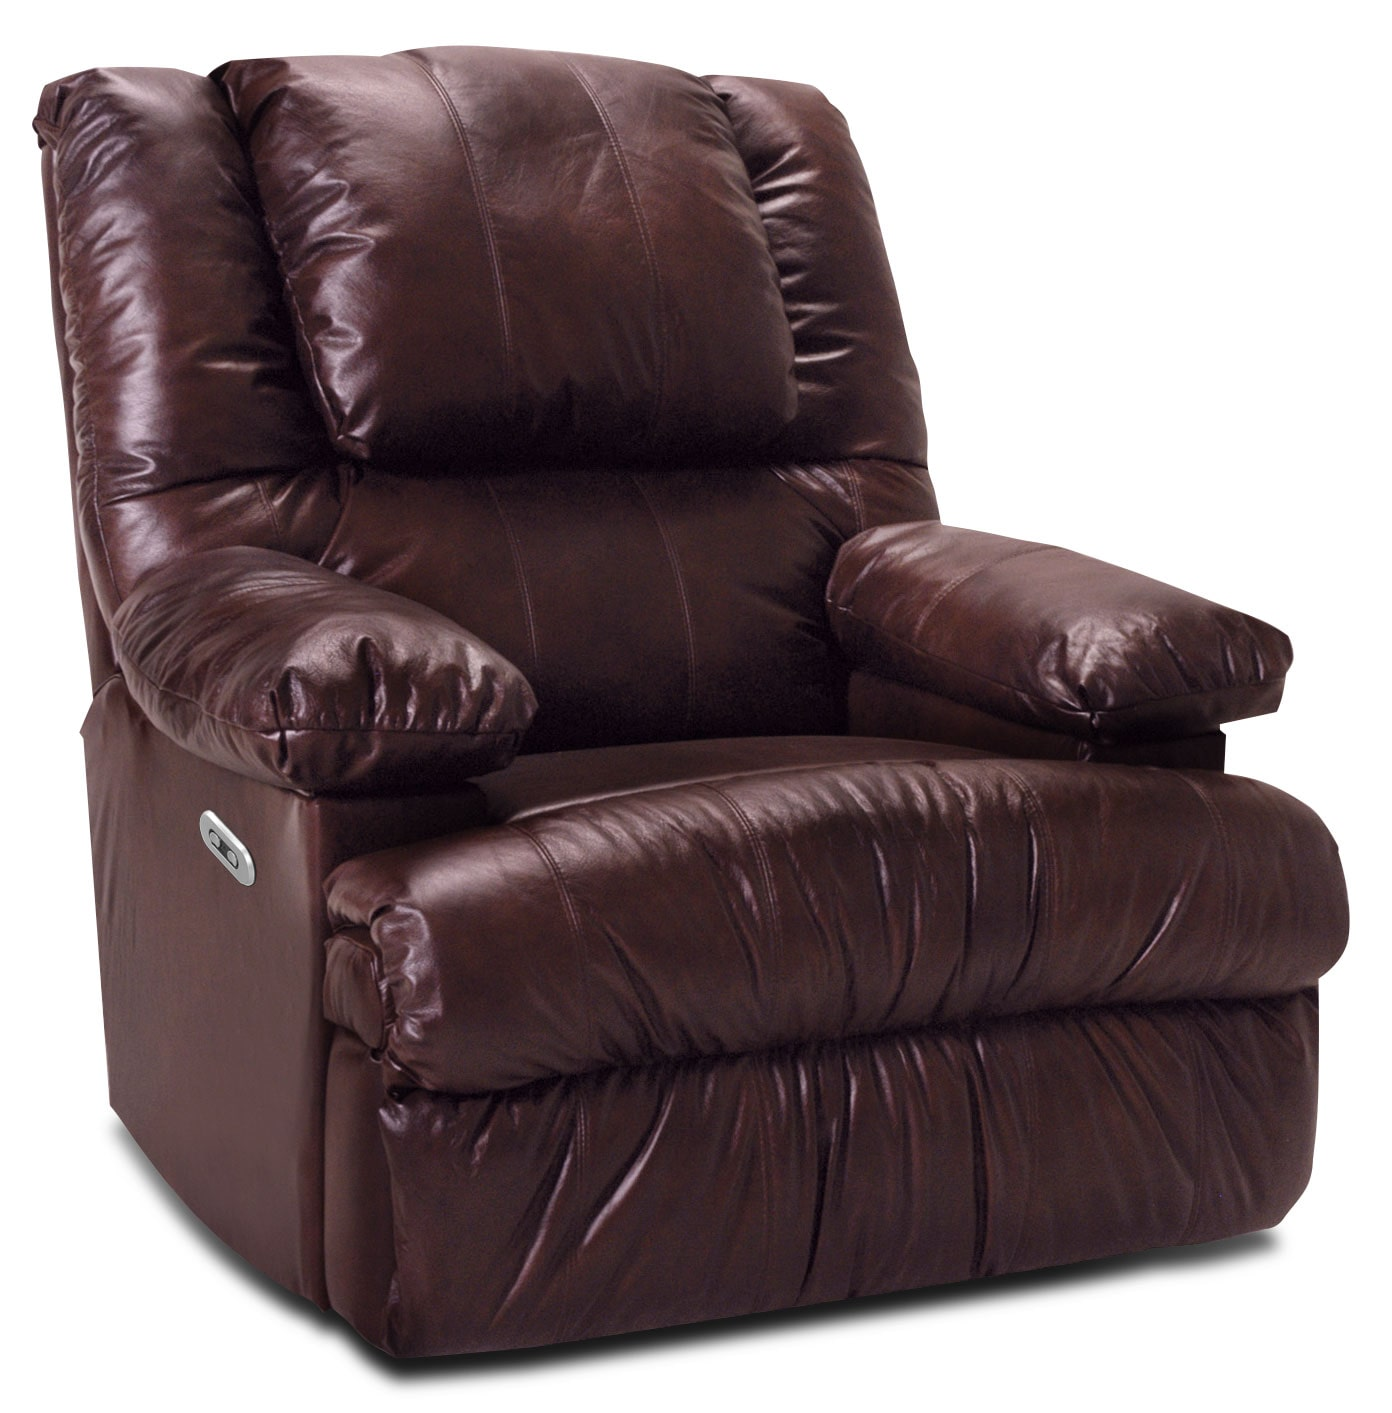 Living Room Furniture - Designed2B 5598 Genuine Leather Power Recliner with Massage and Storage Arms - Burgundy